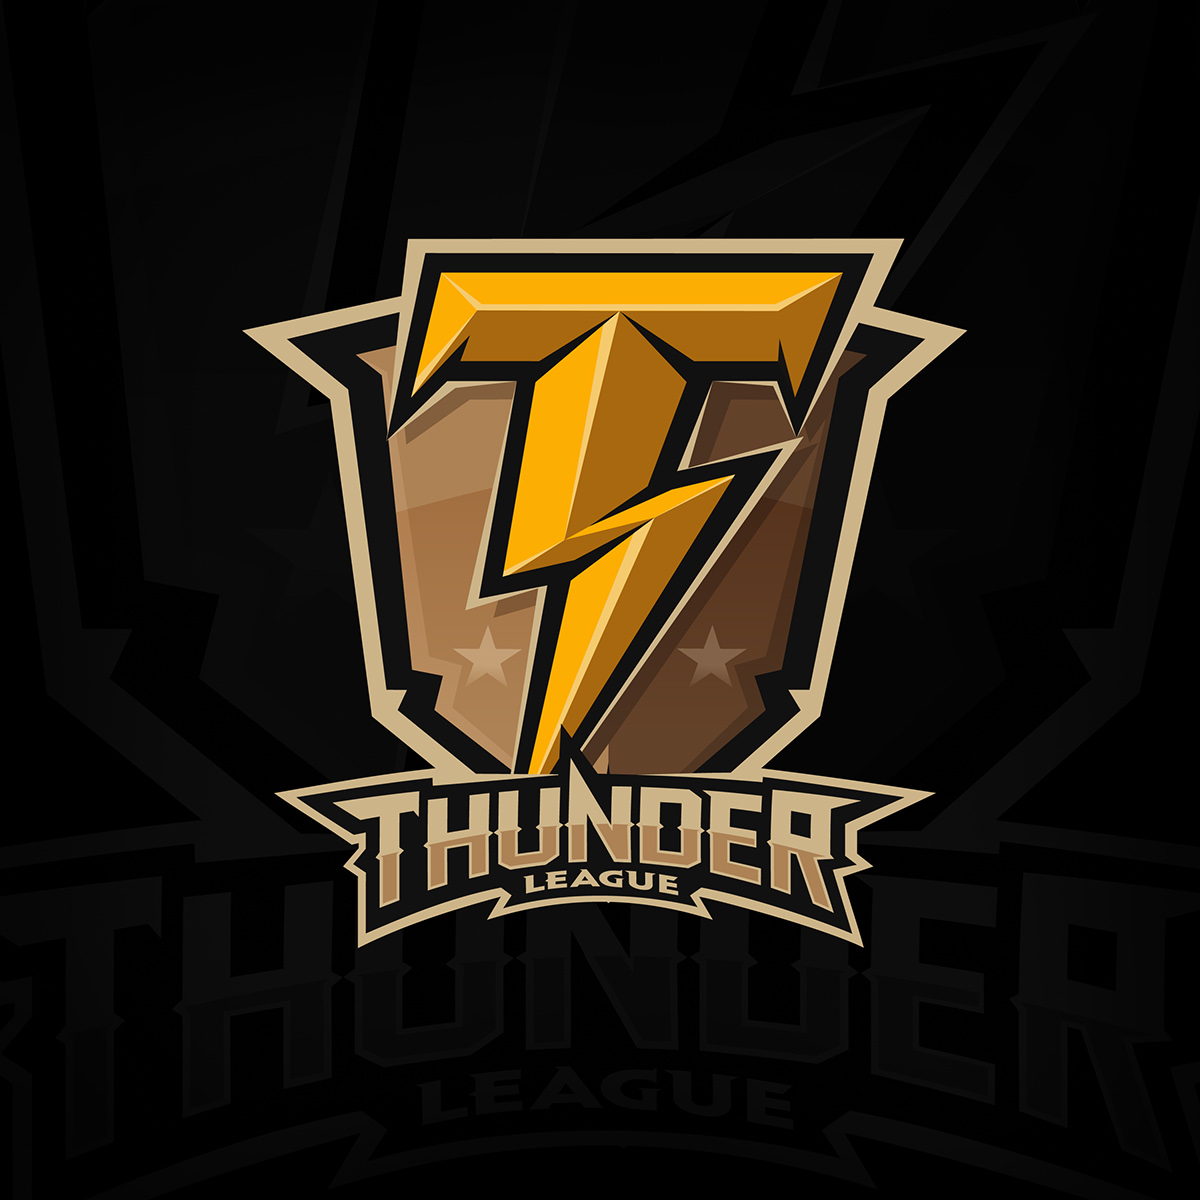 war thunder league